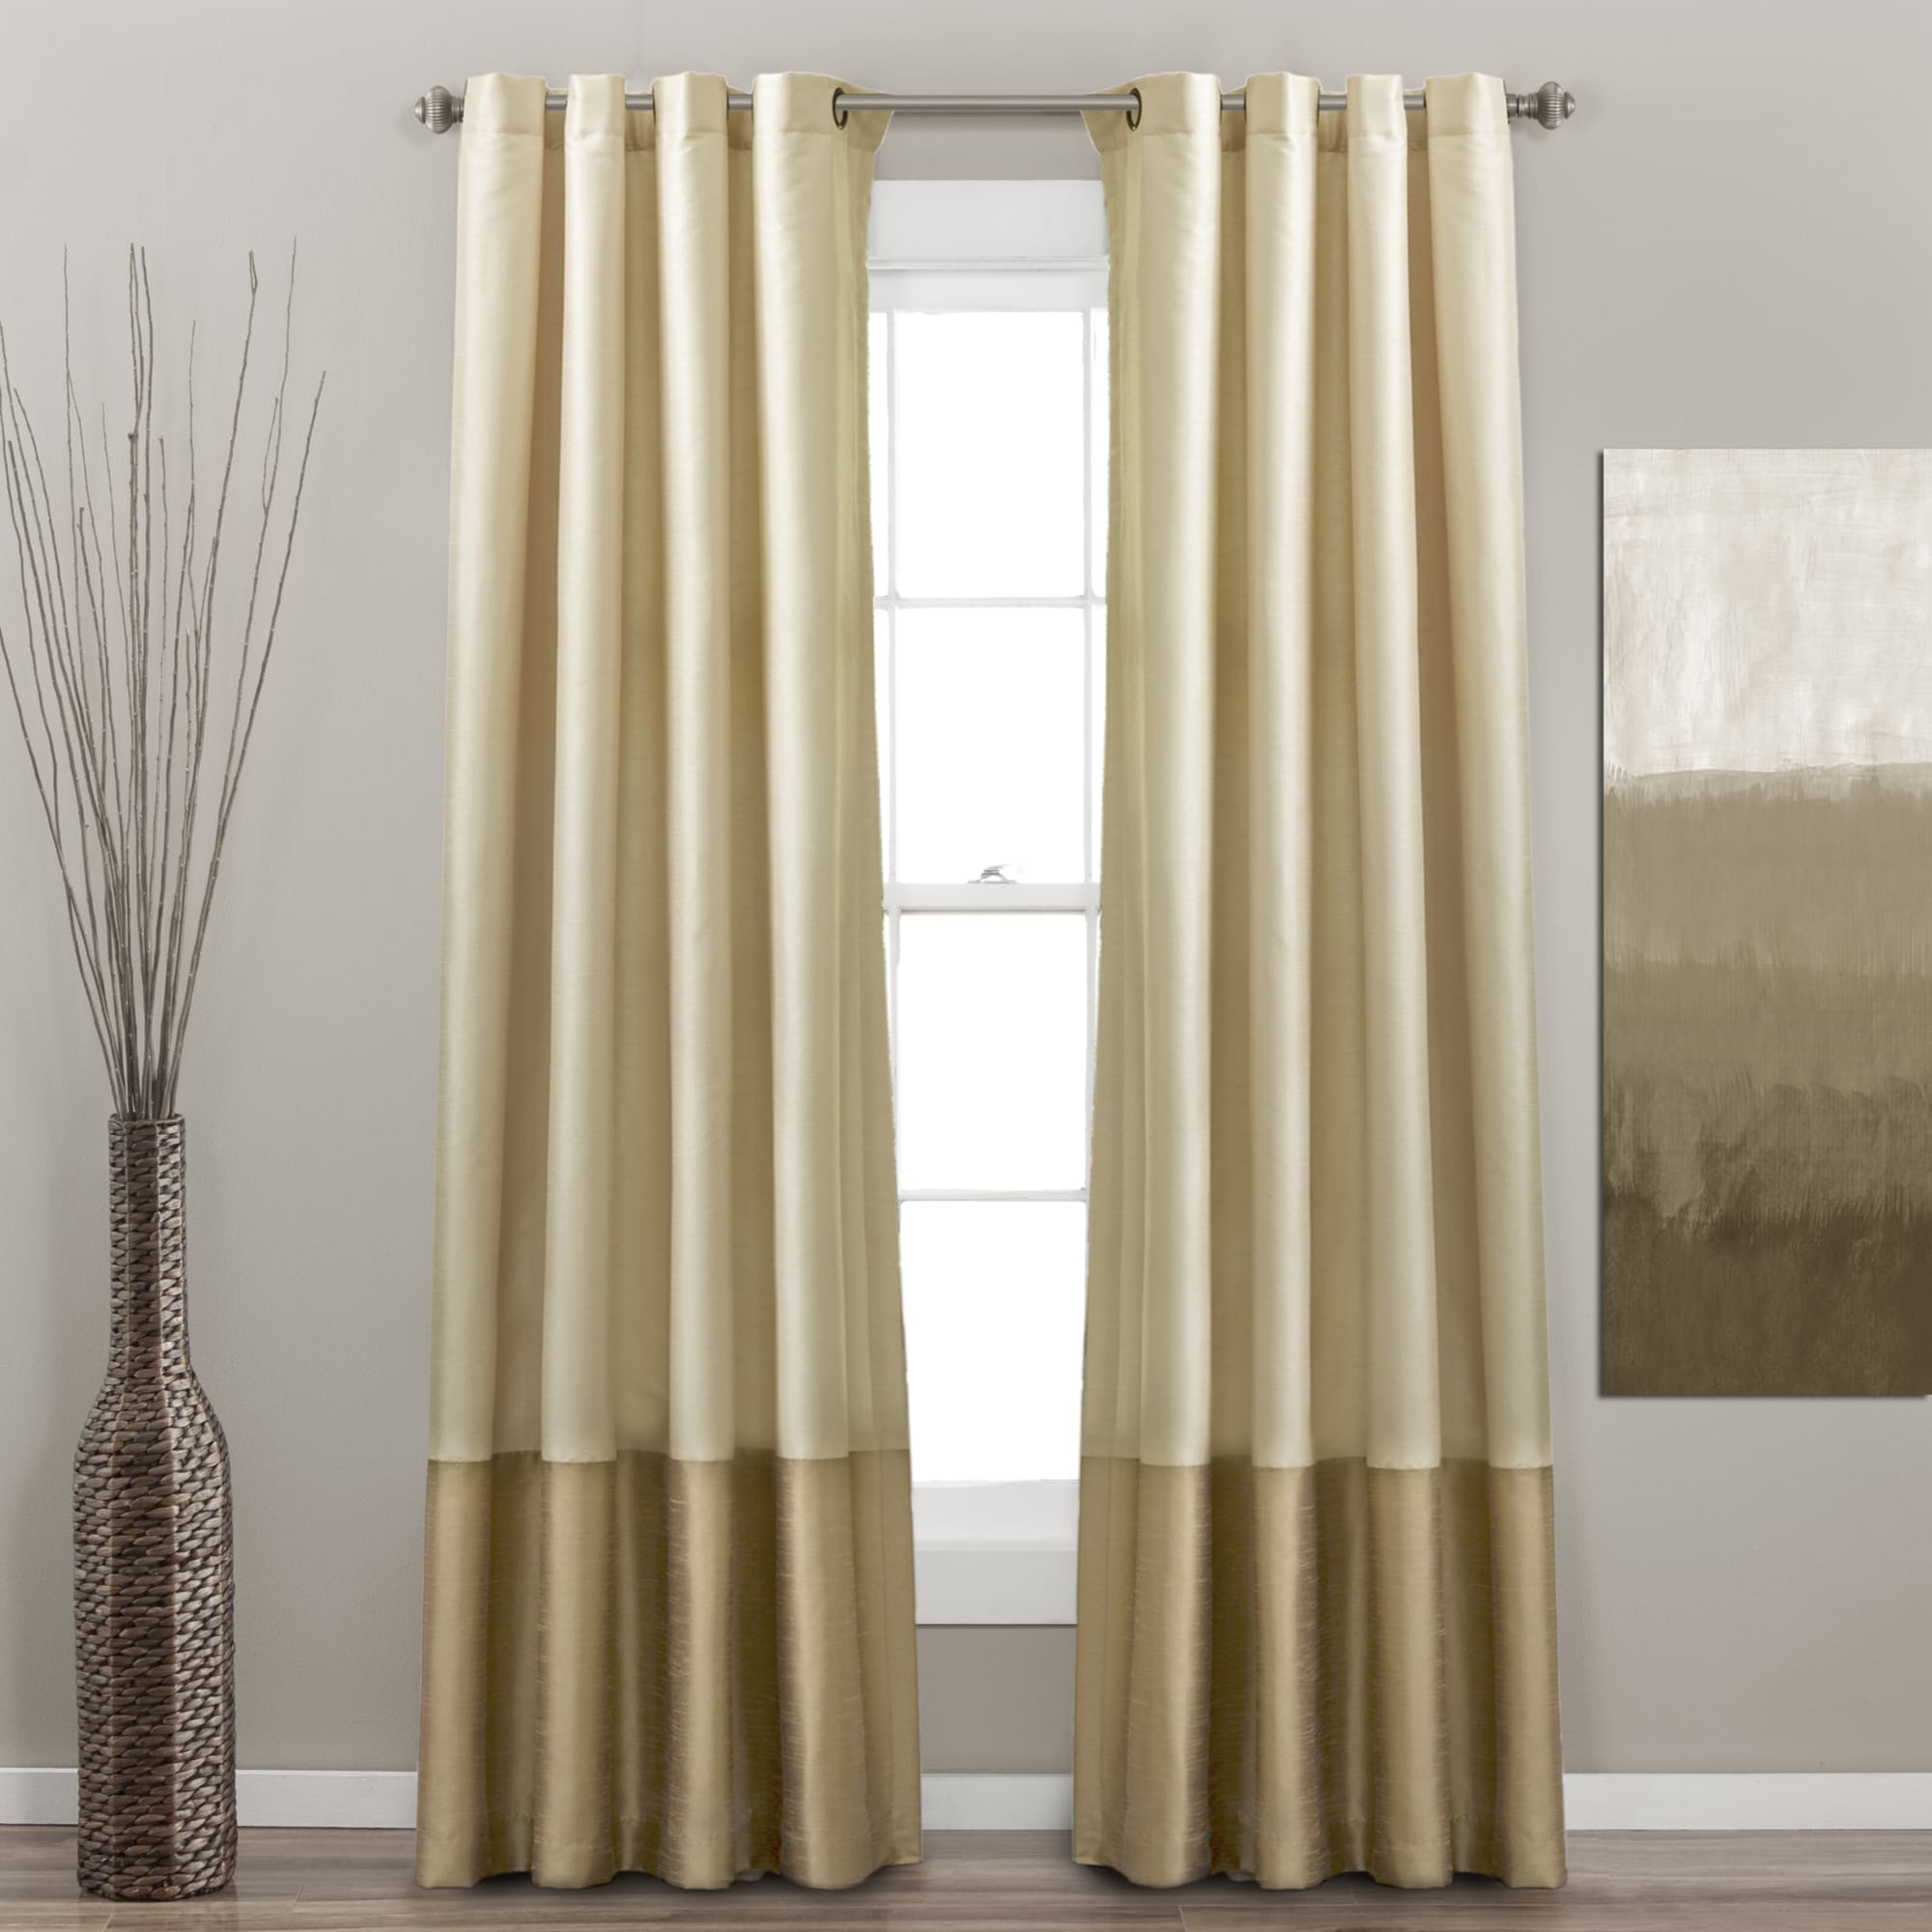 modern for image com damask white of curtains print less striped overstock fascinating curtain room buy size full study inspirations drapes